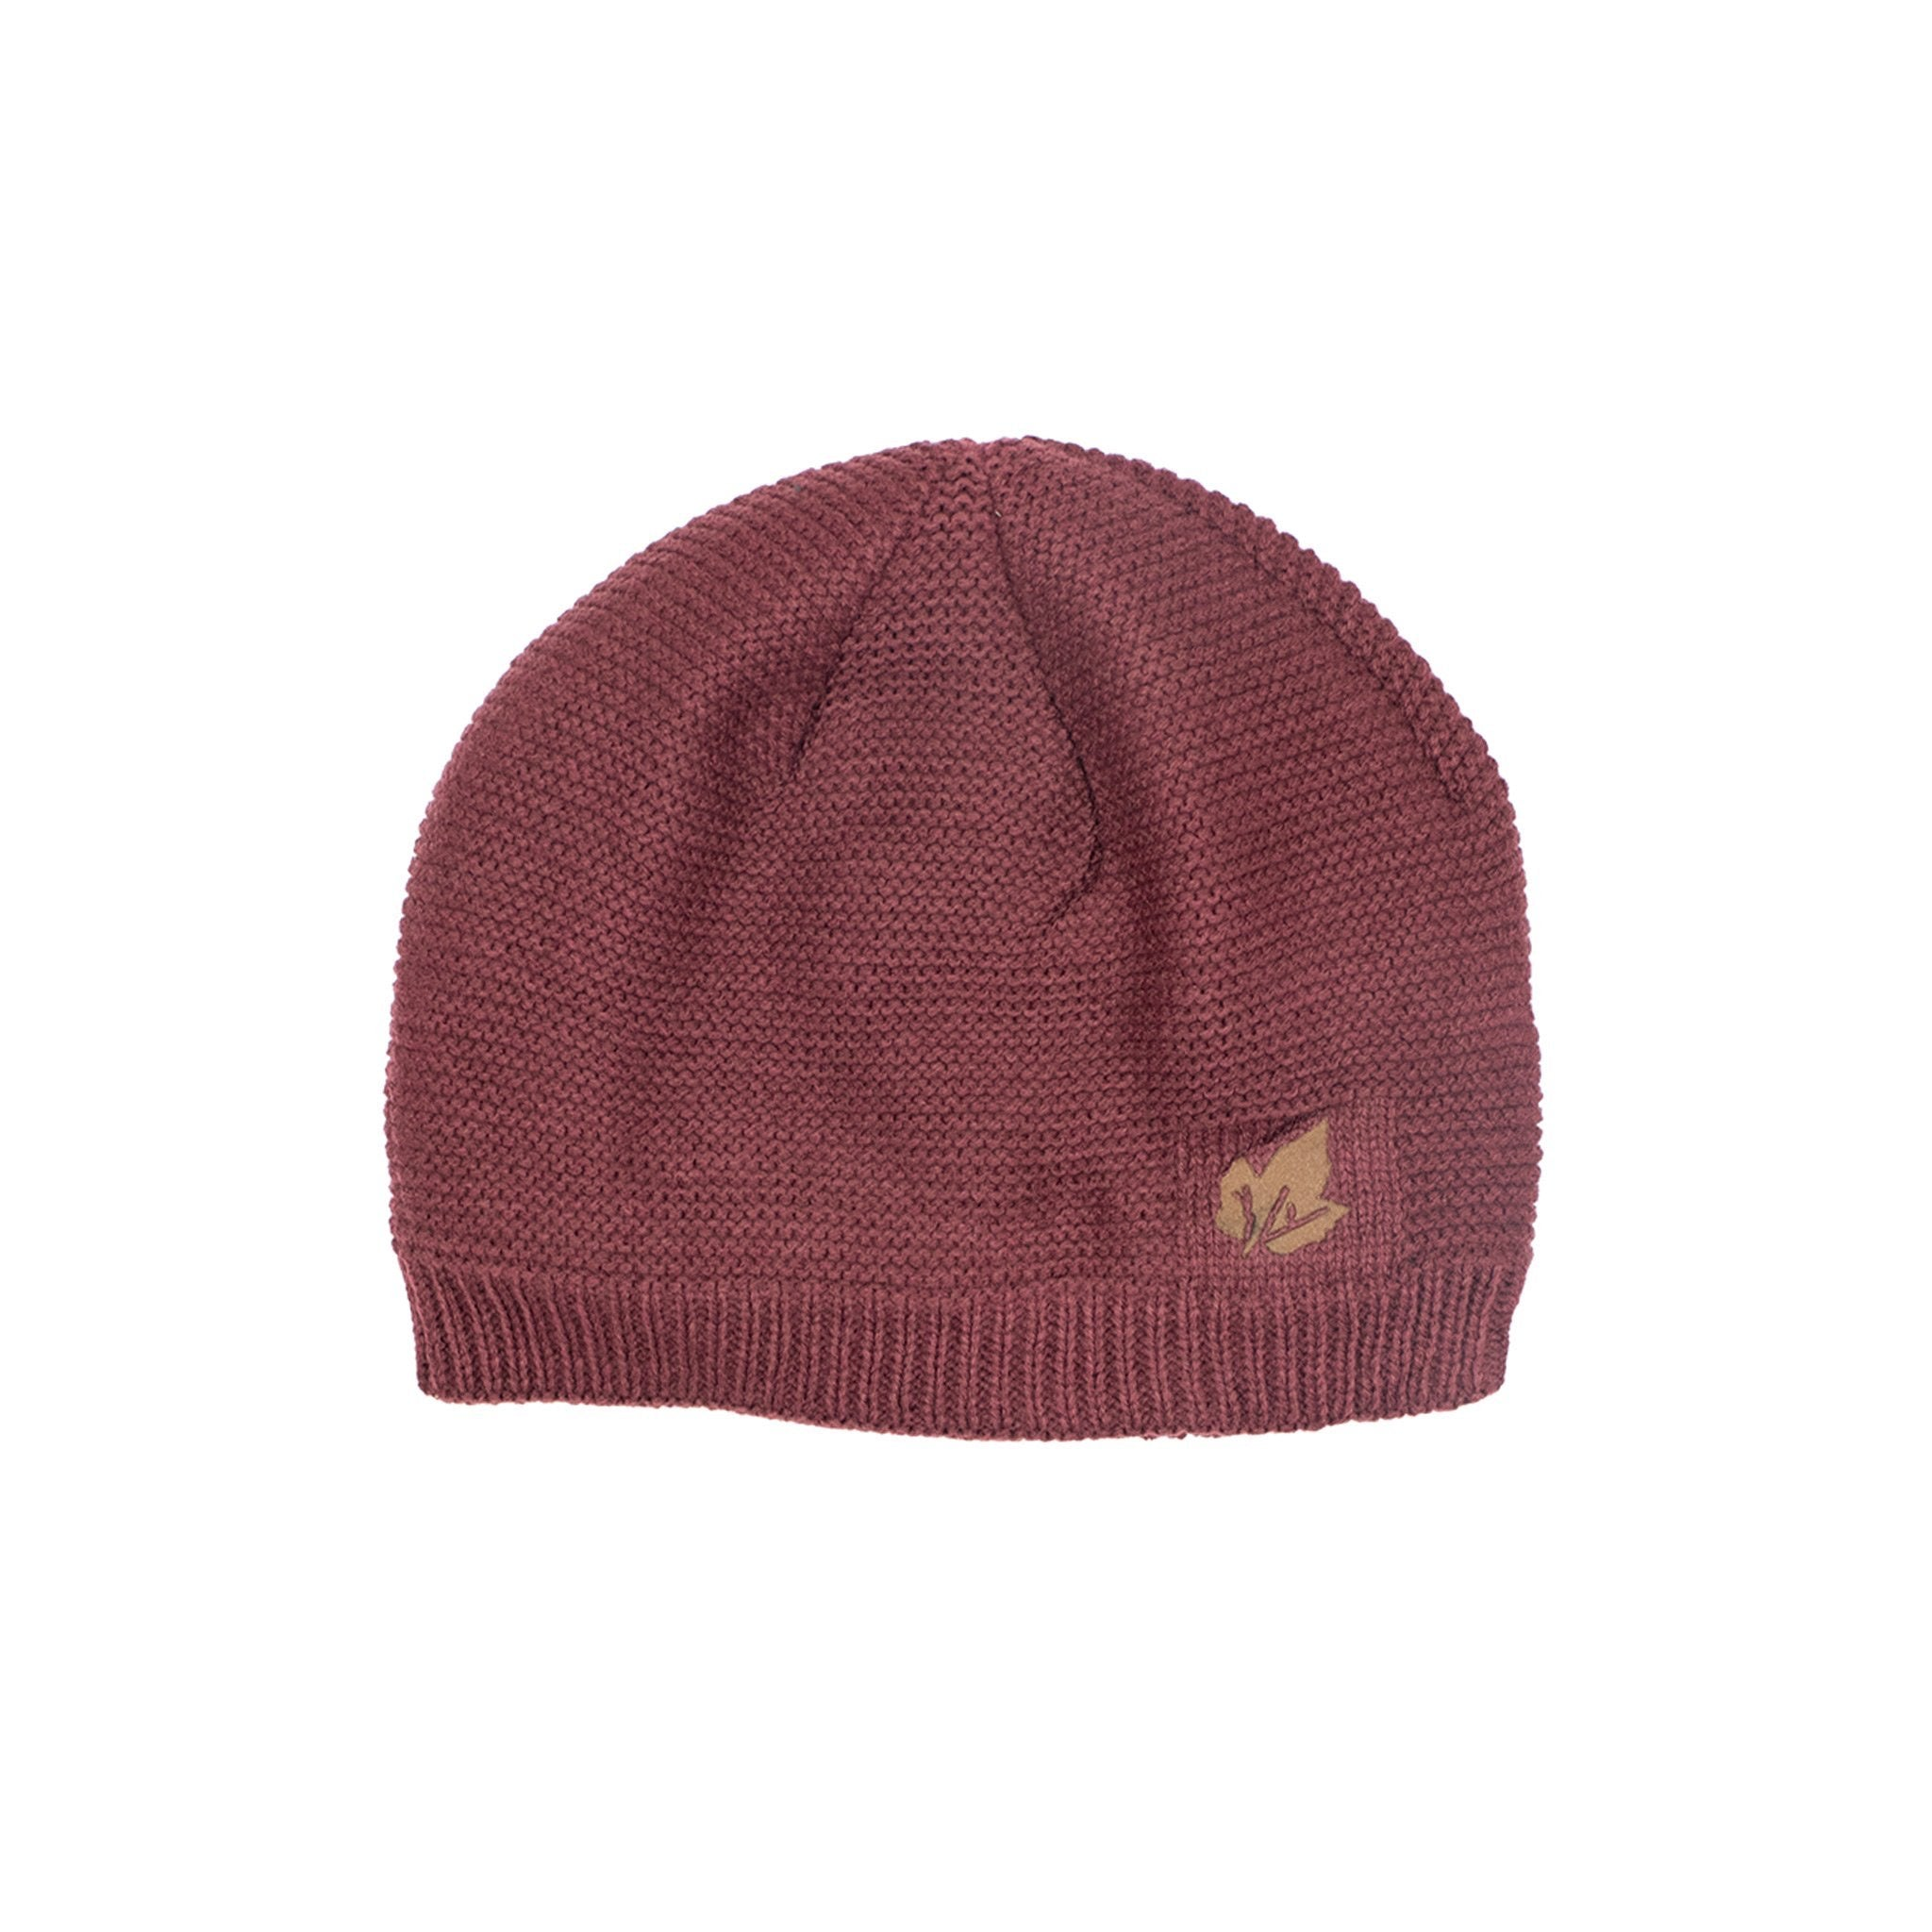 Fleece Lined Knitted Beanie Hat